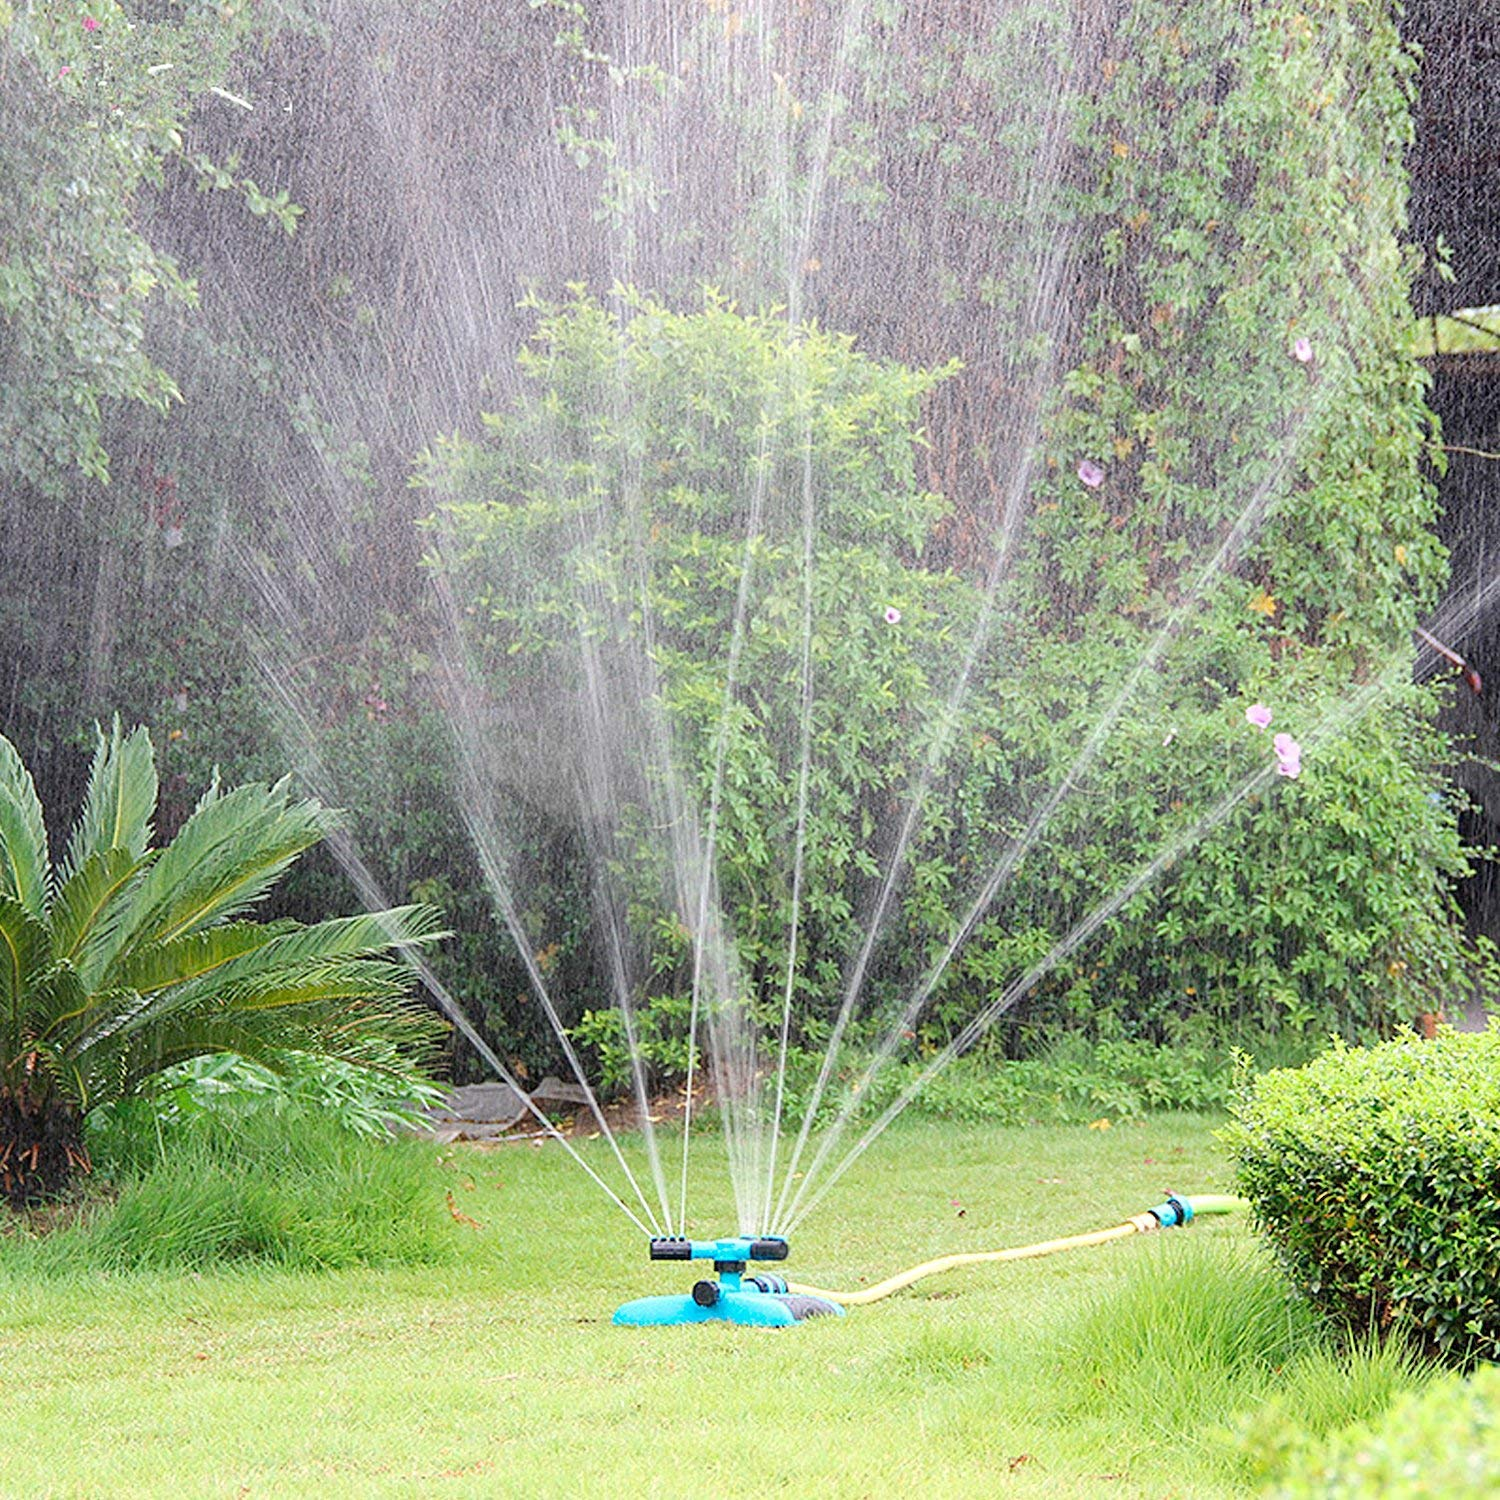 Automatic Lawn Water Sprinkler 360 Degree 3- Arm Rotating Sprinkler System